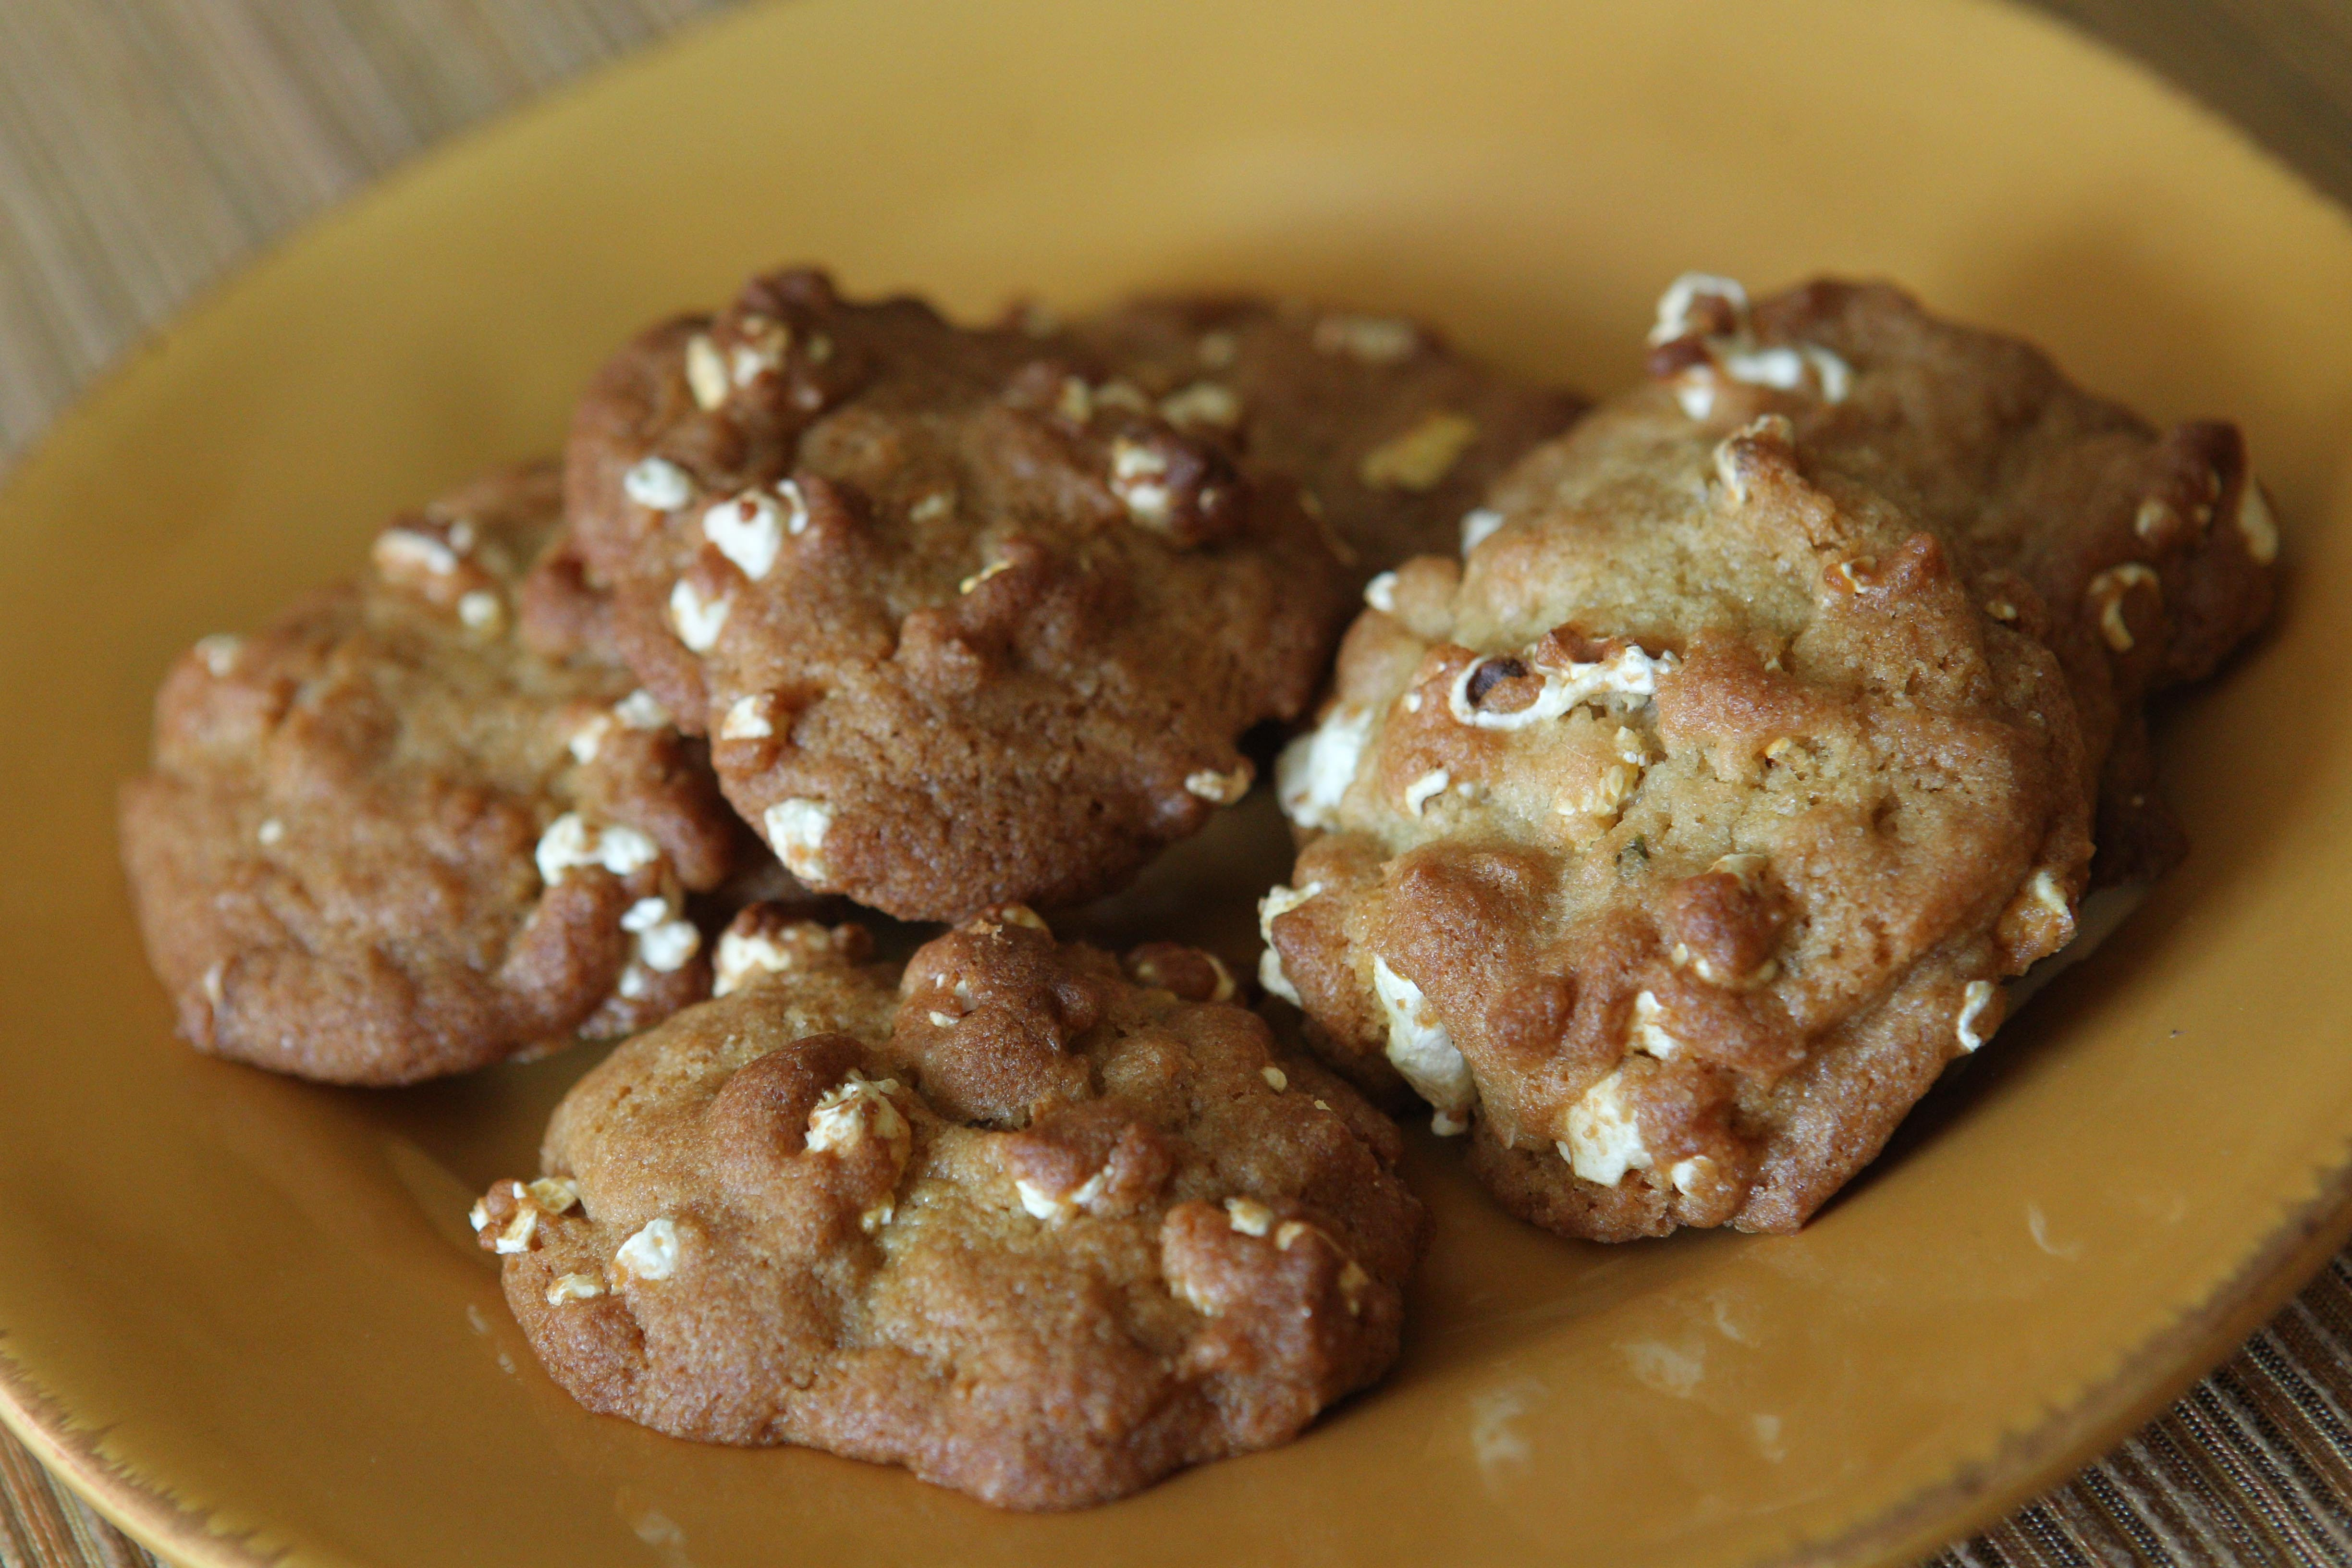 Popcorn adds a salty, crunchy side to cookies.